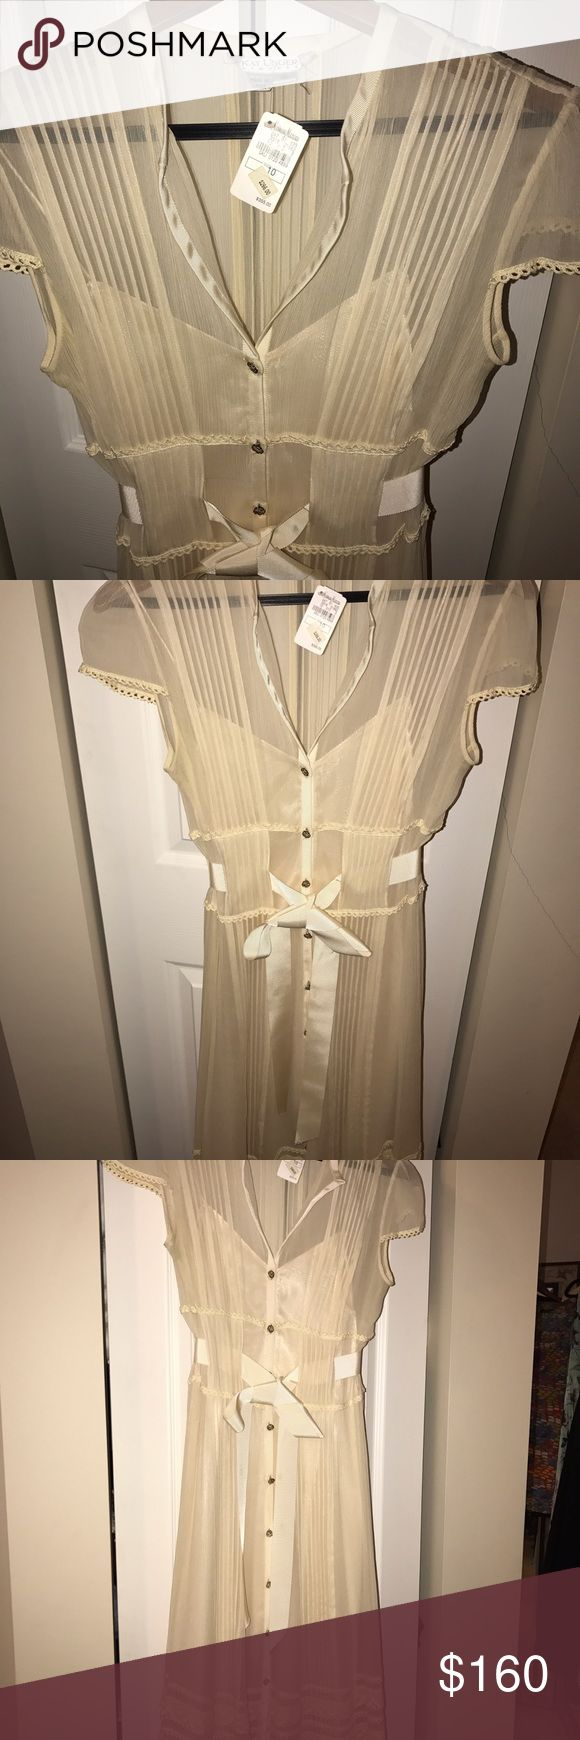 Kay Unger dress with tag Kay Unger size 10 gorgeous dress Kay Unger Dresses Midi